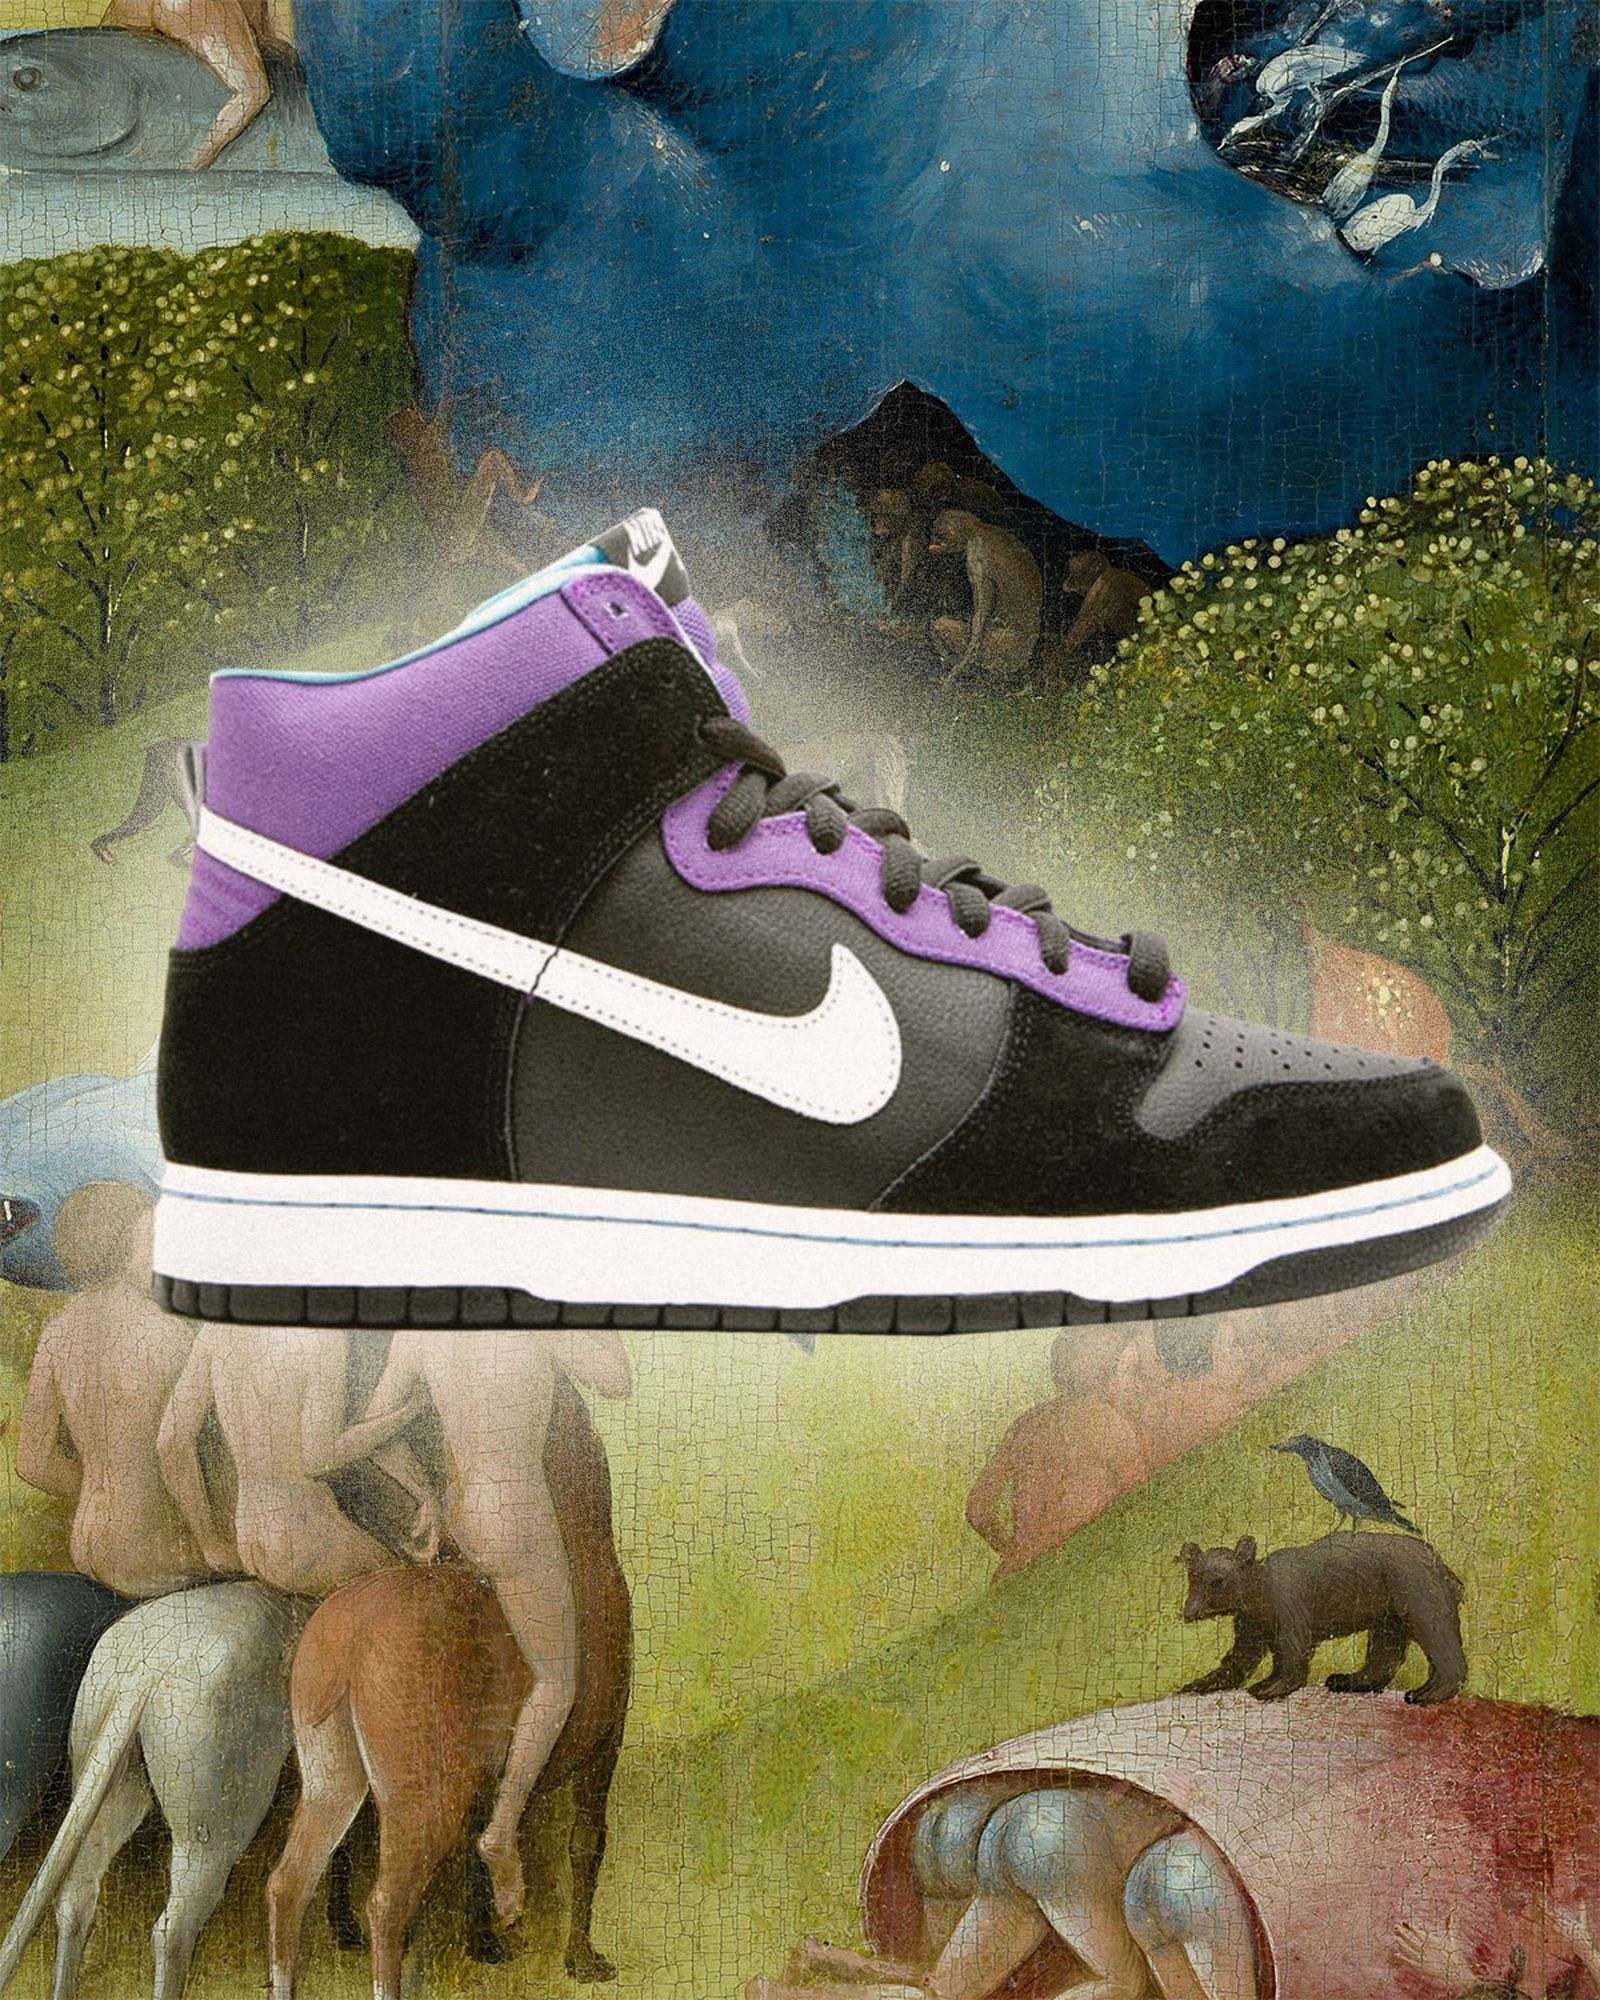 Nike-Dunk-High-Heavens-Gate